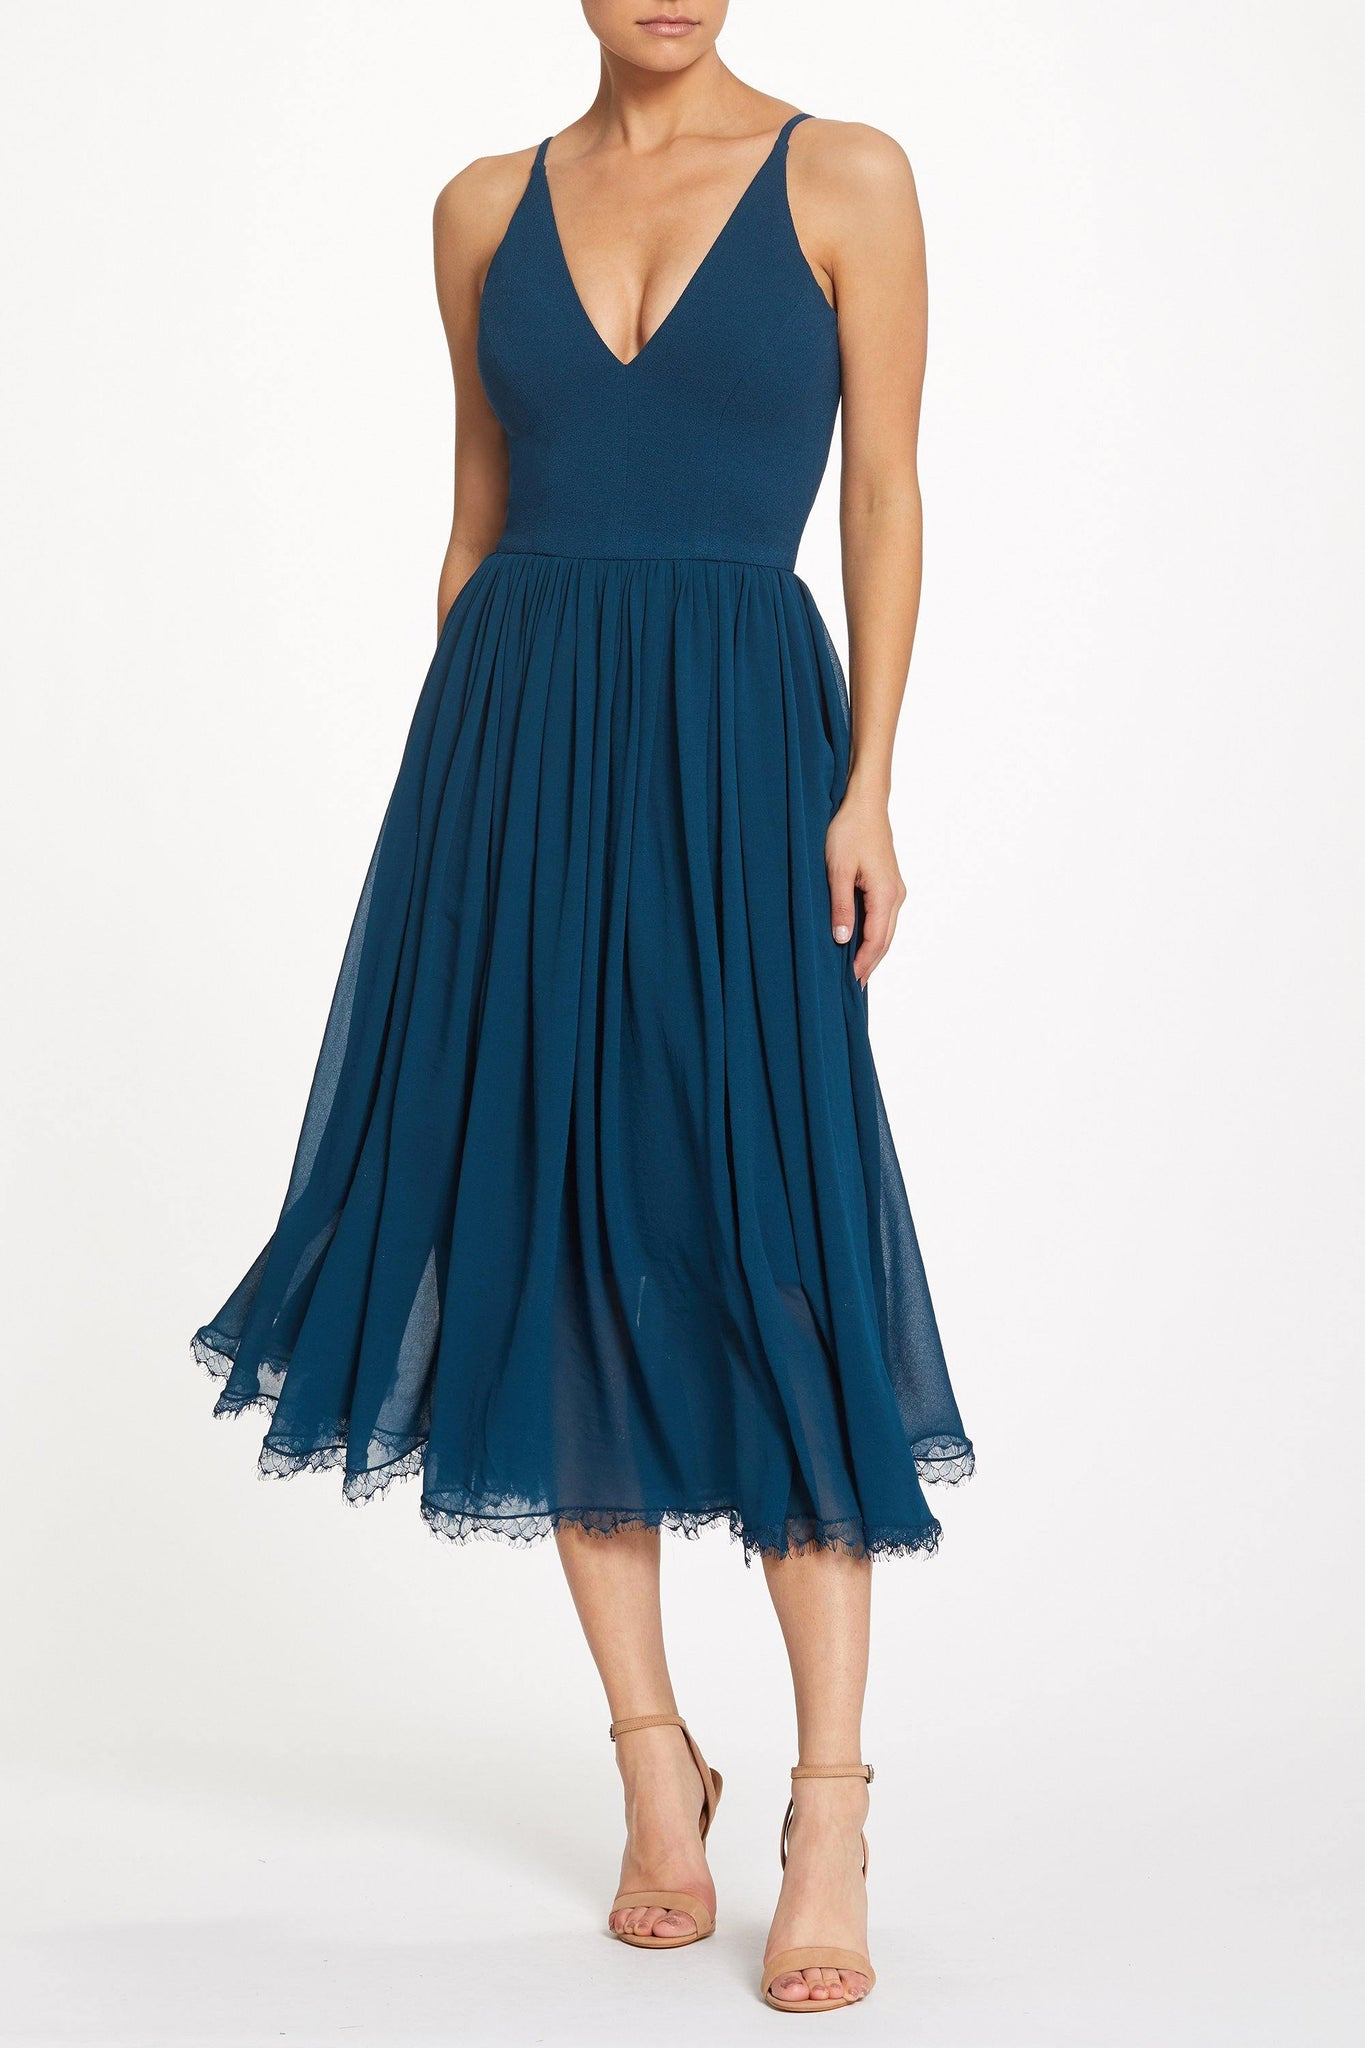 Alicia Chiffon Fit and Flare Midi Dress